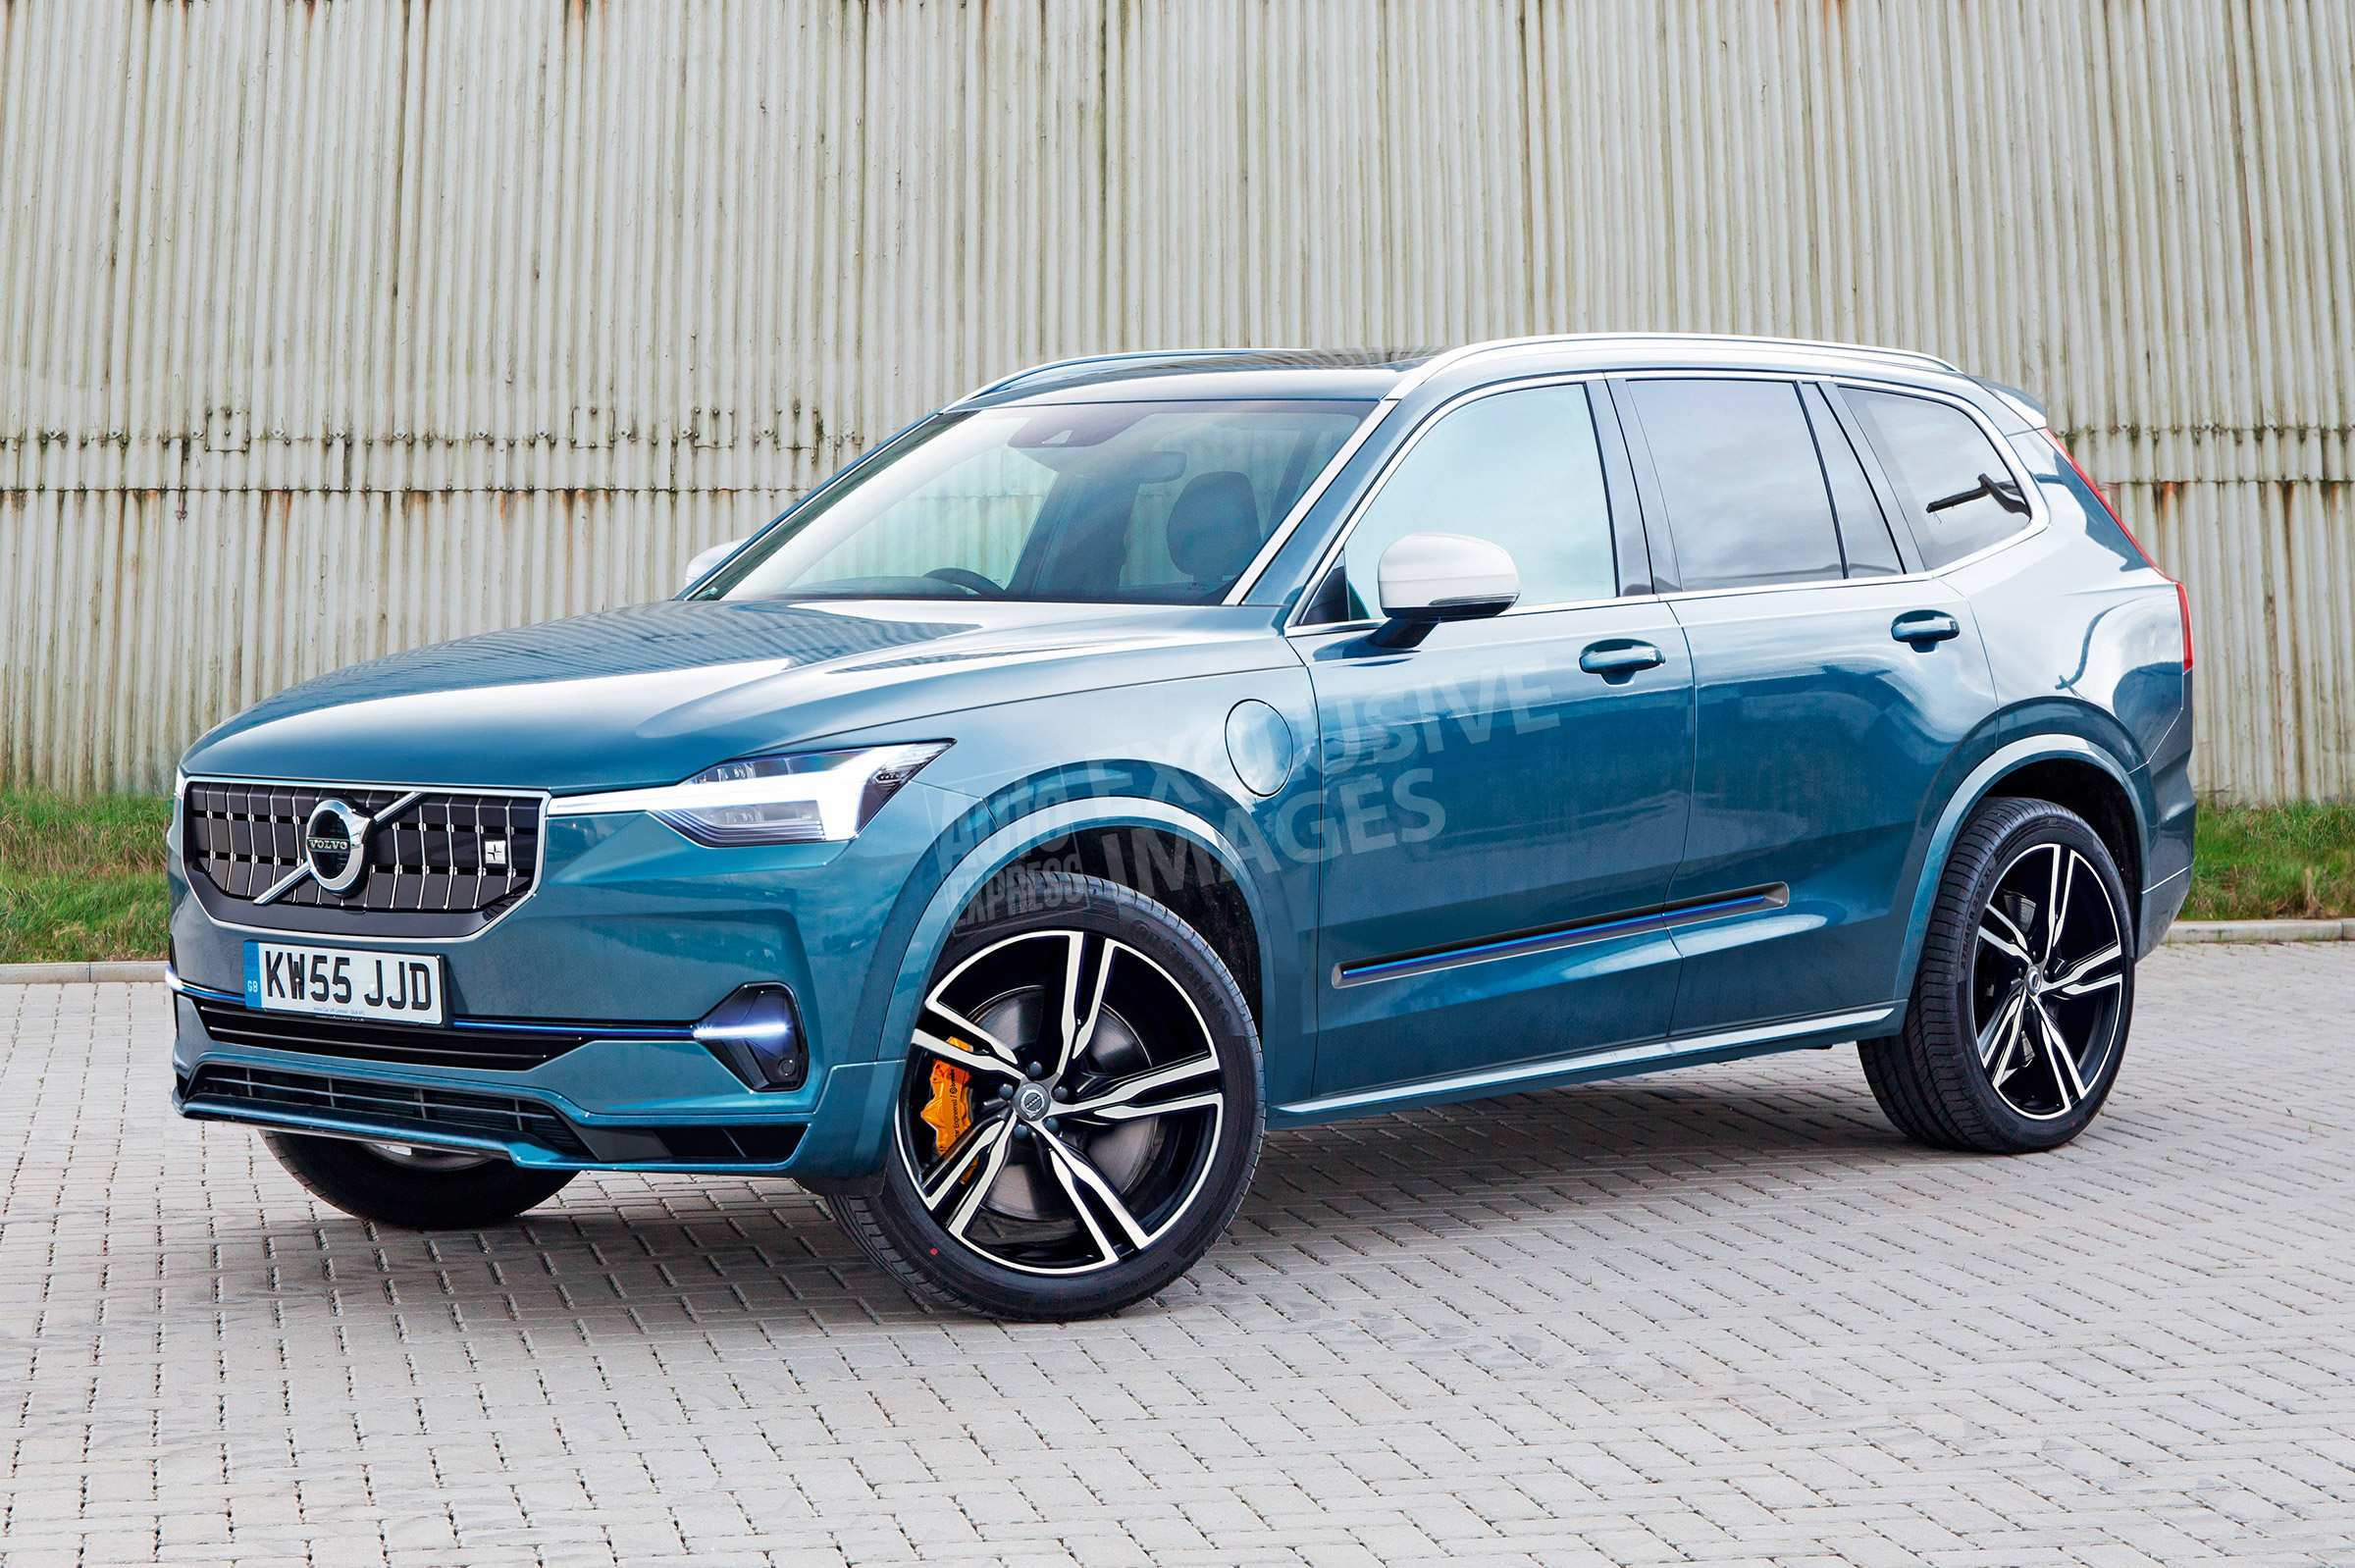 69 Great 2020 Volvo Xc90 New Concept Research New with 2020 Volvo Xc90 New Concept